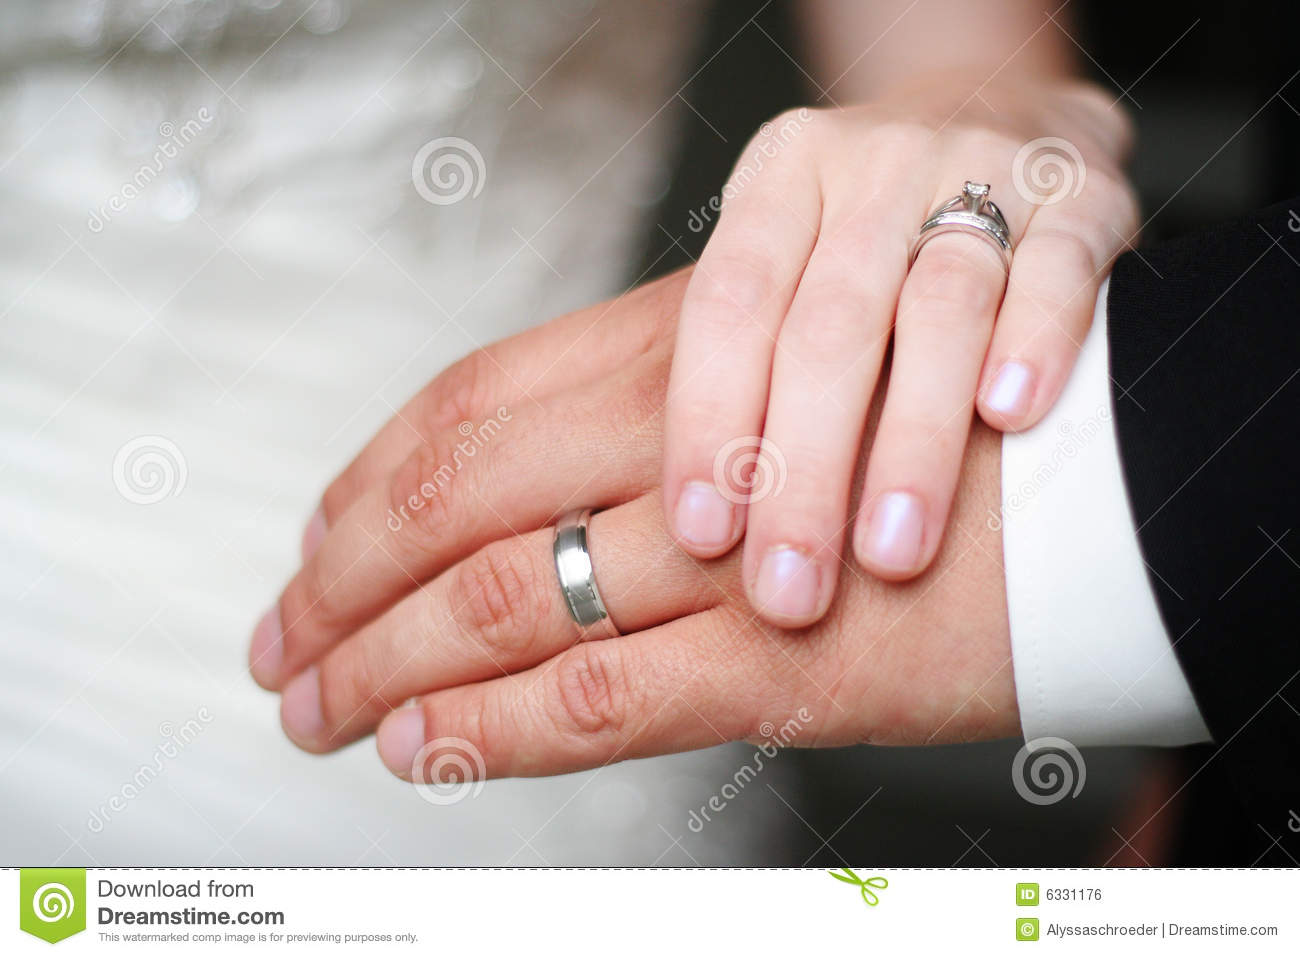 Bride And Groom Wedding Rings Stock Photo - Image of groom, hands ...